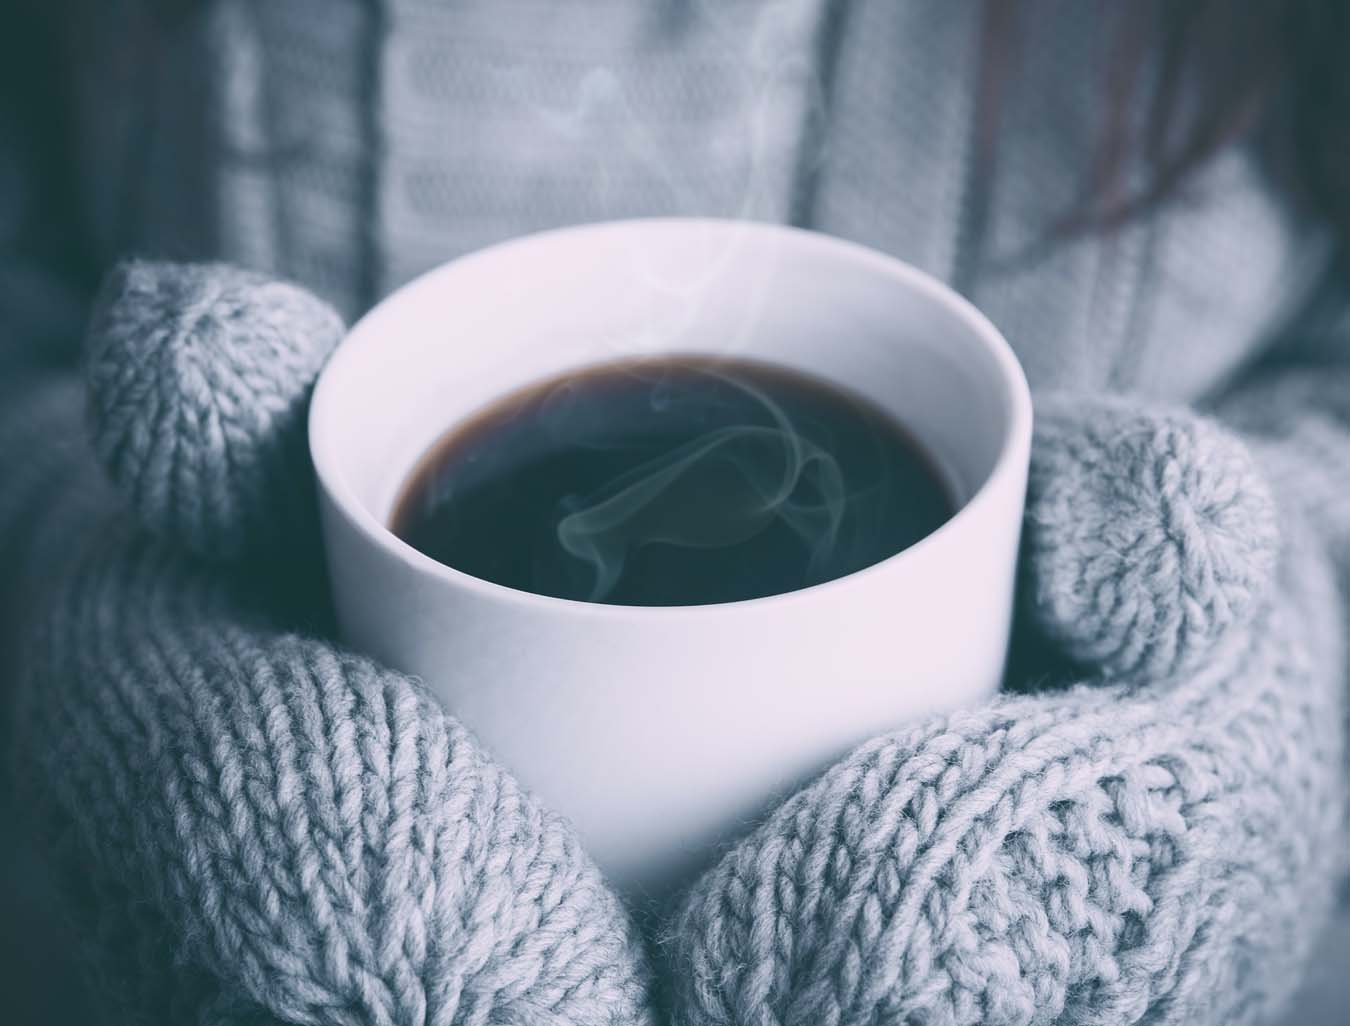 Hands in thick woolen gloves hold a cup of hot tea.